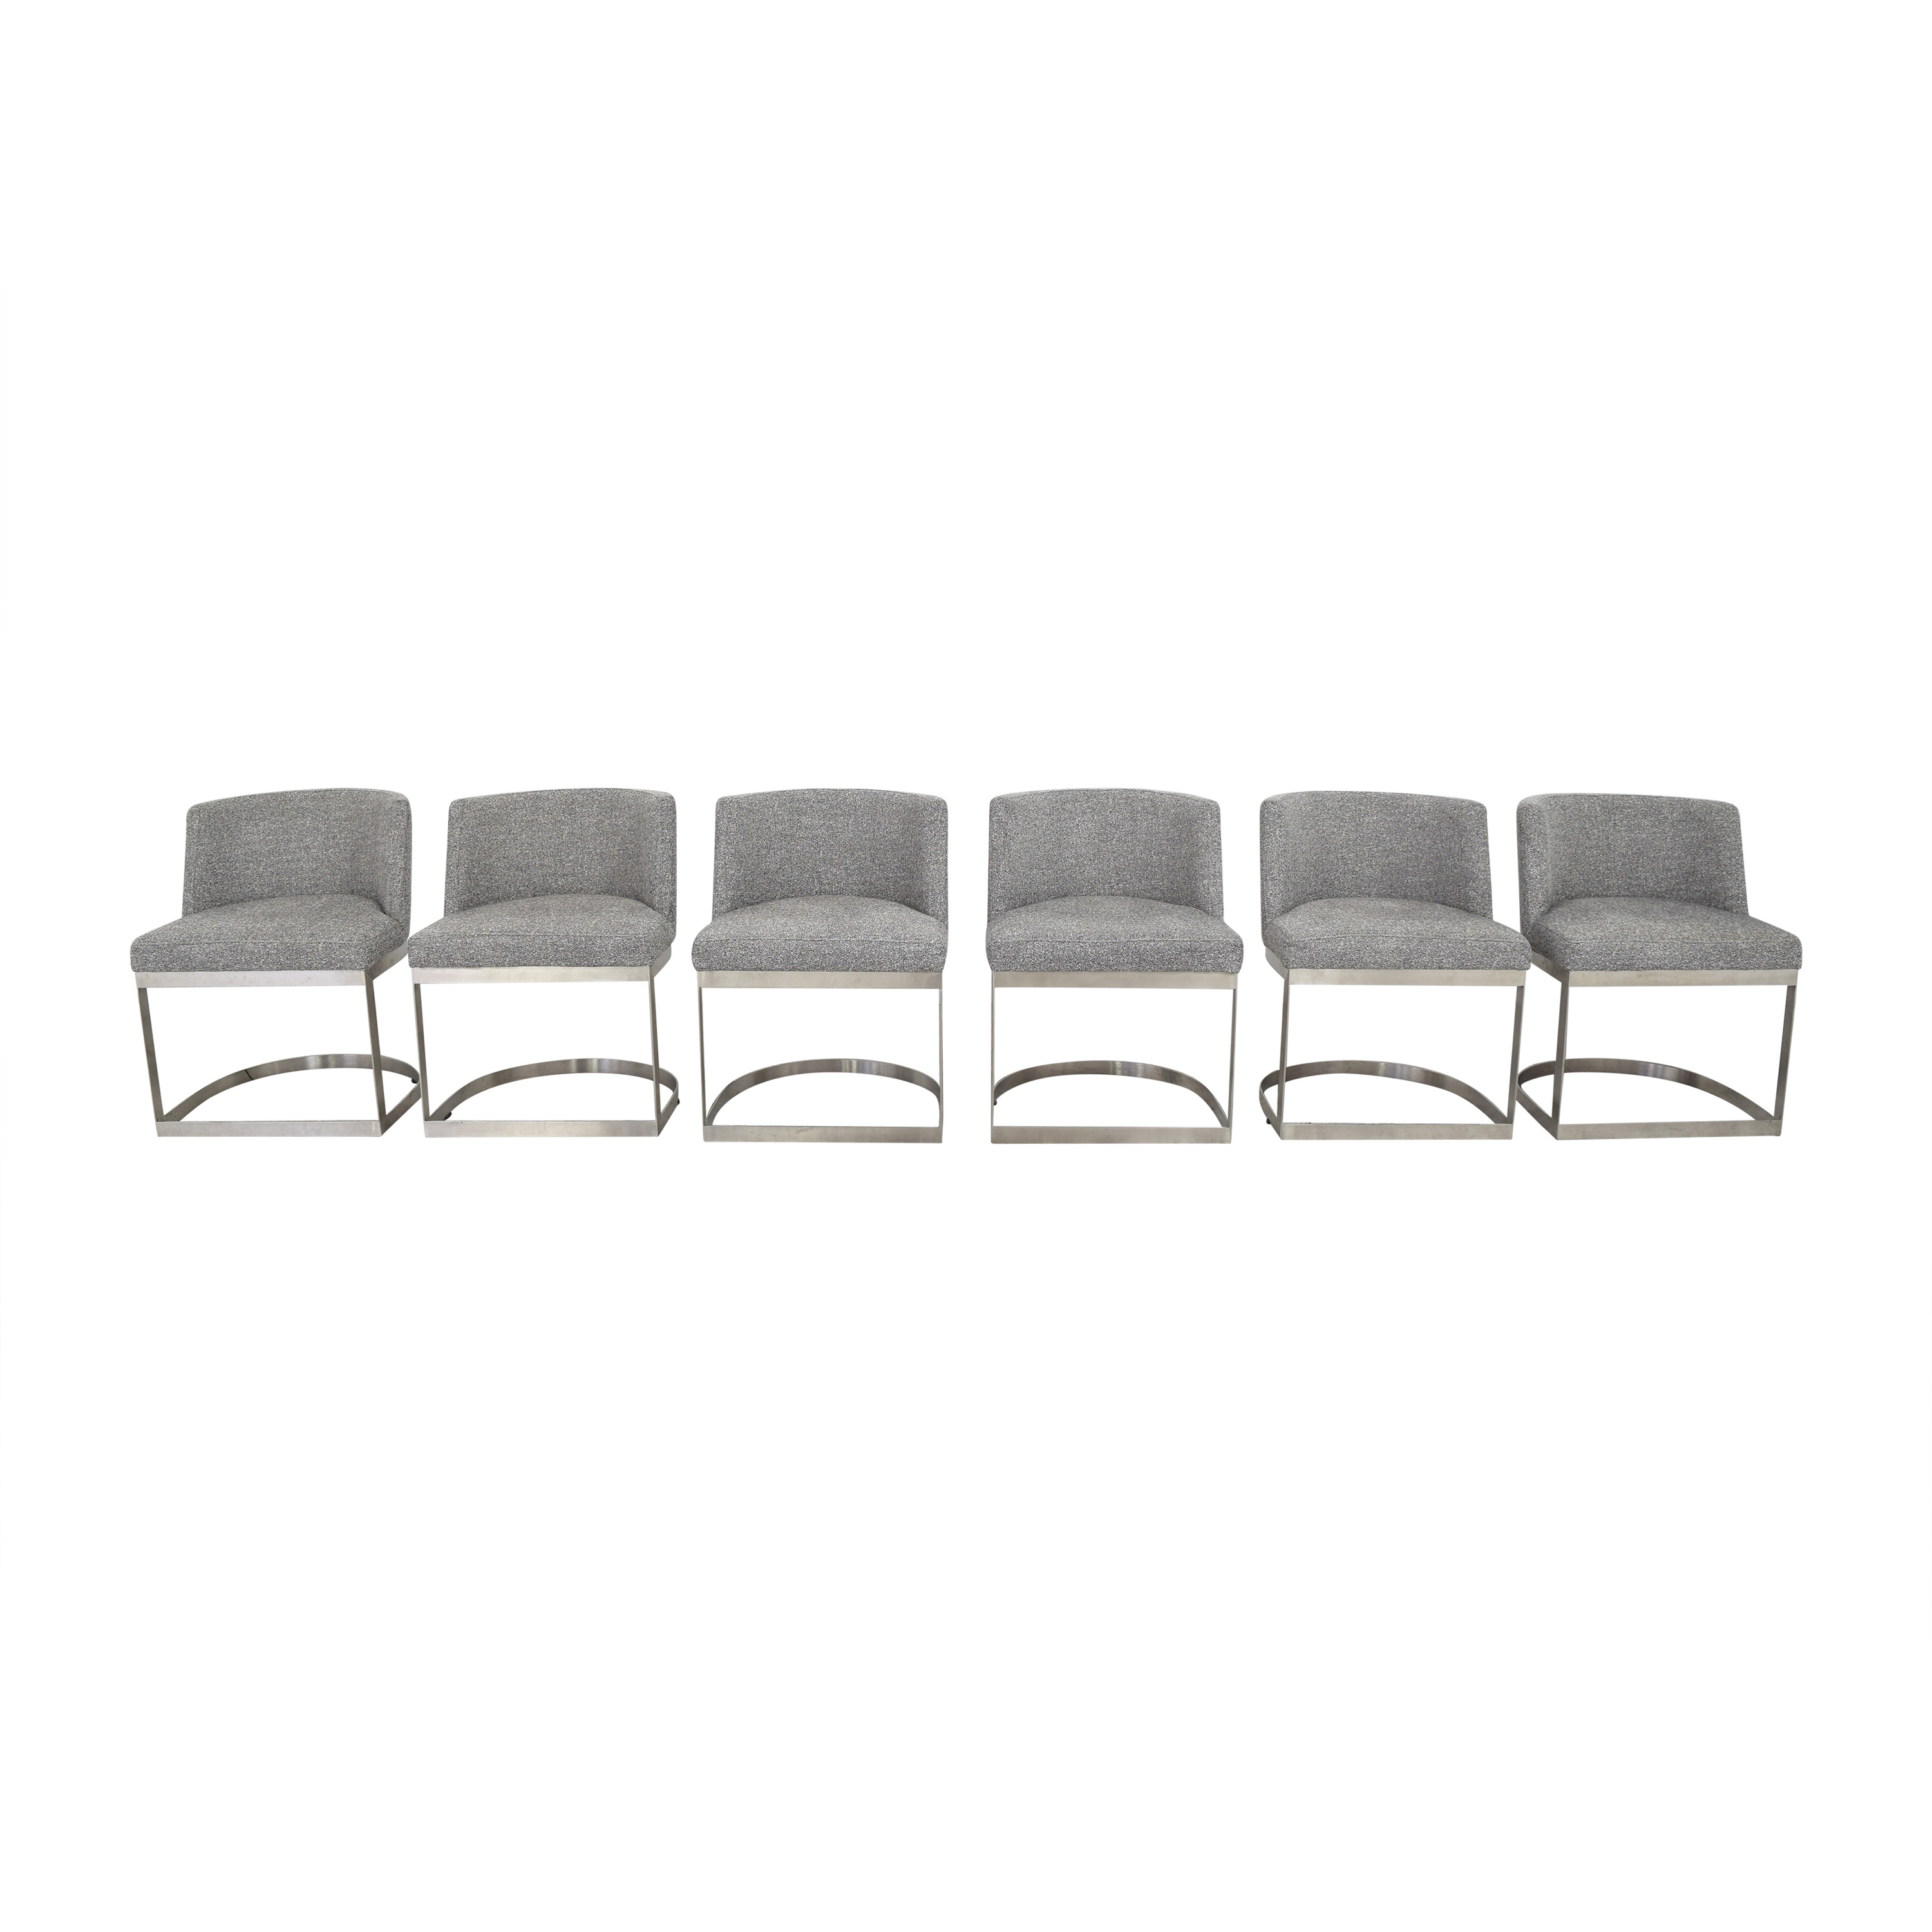 Four Hands Ashford Wexler Dining Chairs / Dining Chairs